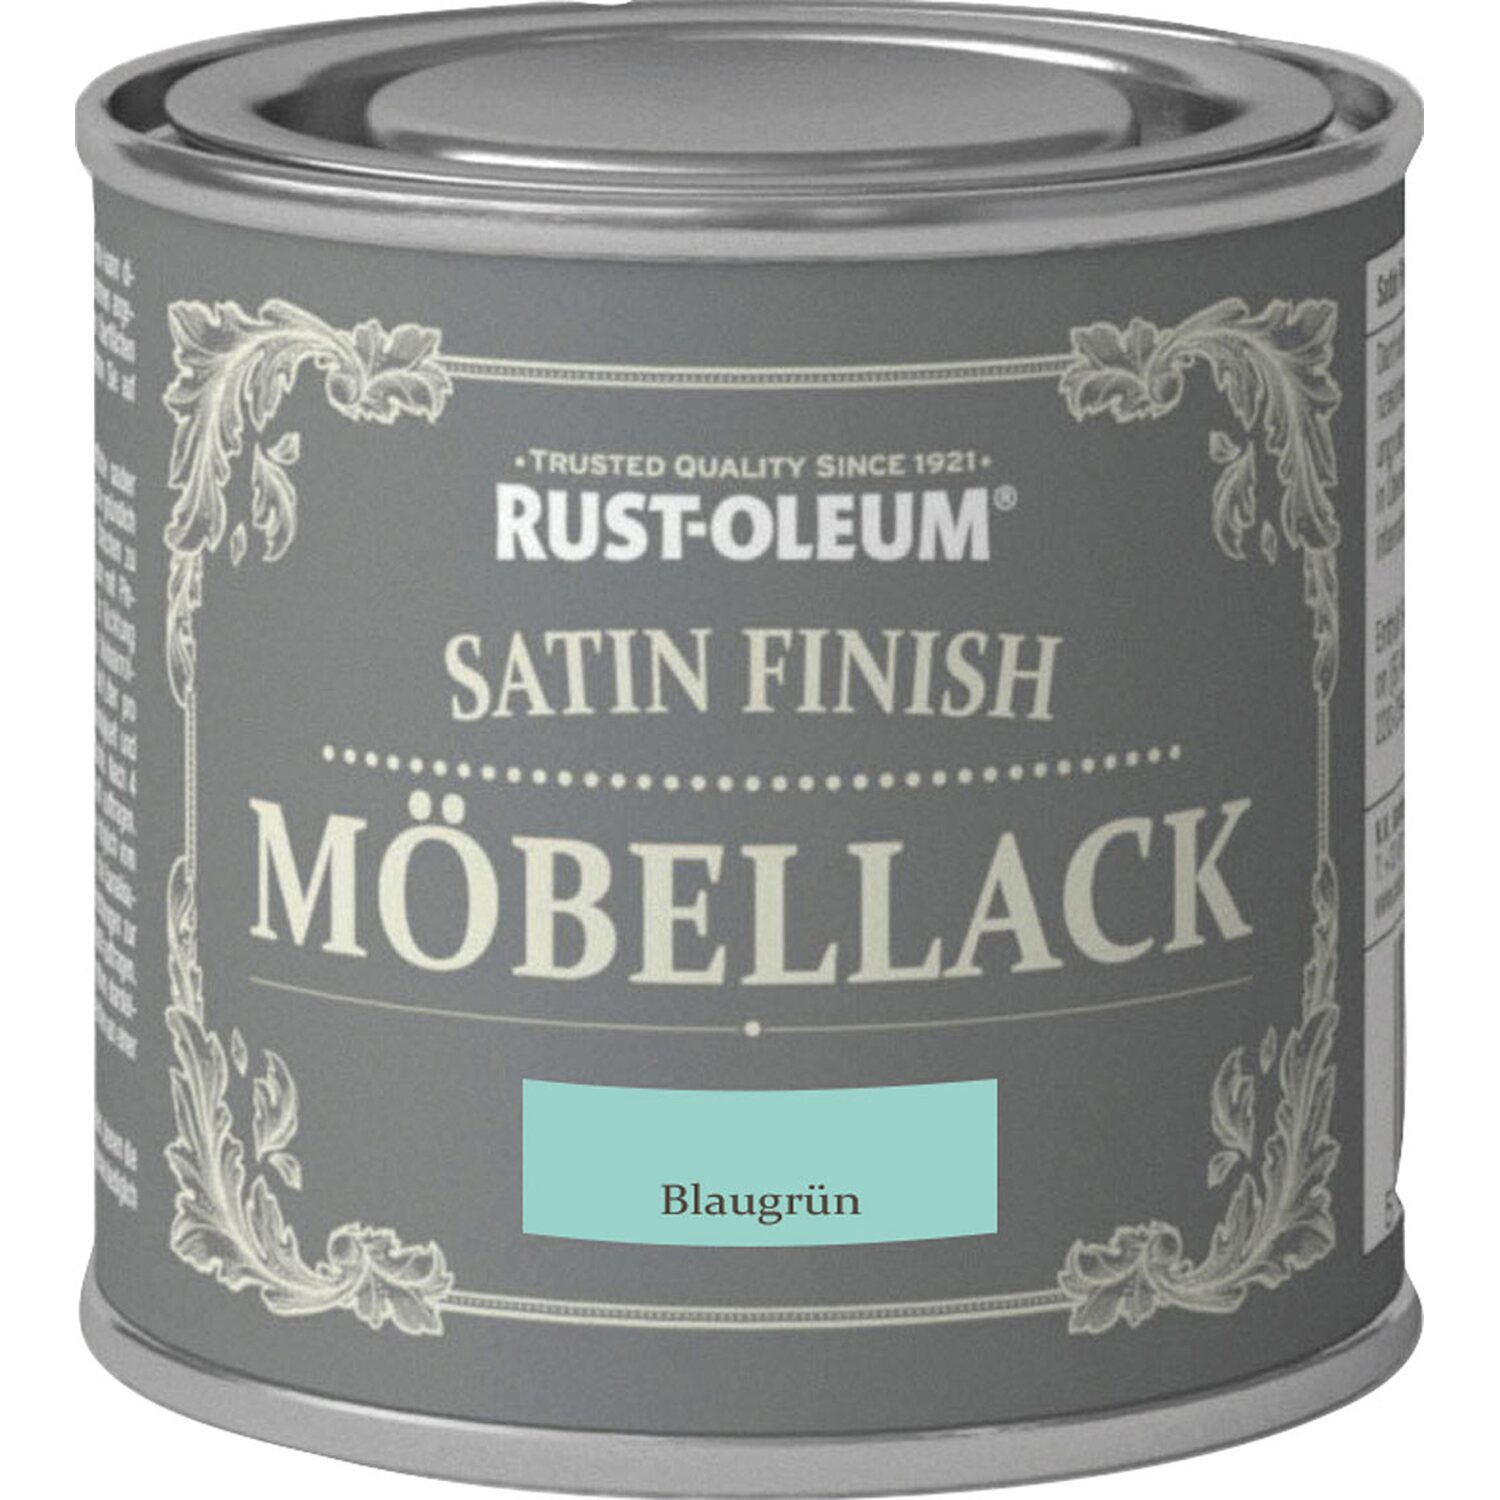 rust oleum kreidefarbe m bellack satin finish blaugr n seidengl nzend 125 ml kaufen bei obi. Black Bedroom Furniture Sets. Home Design Ideas